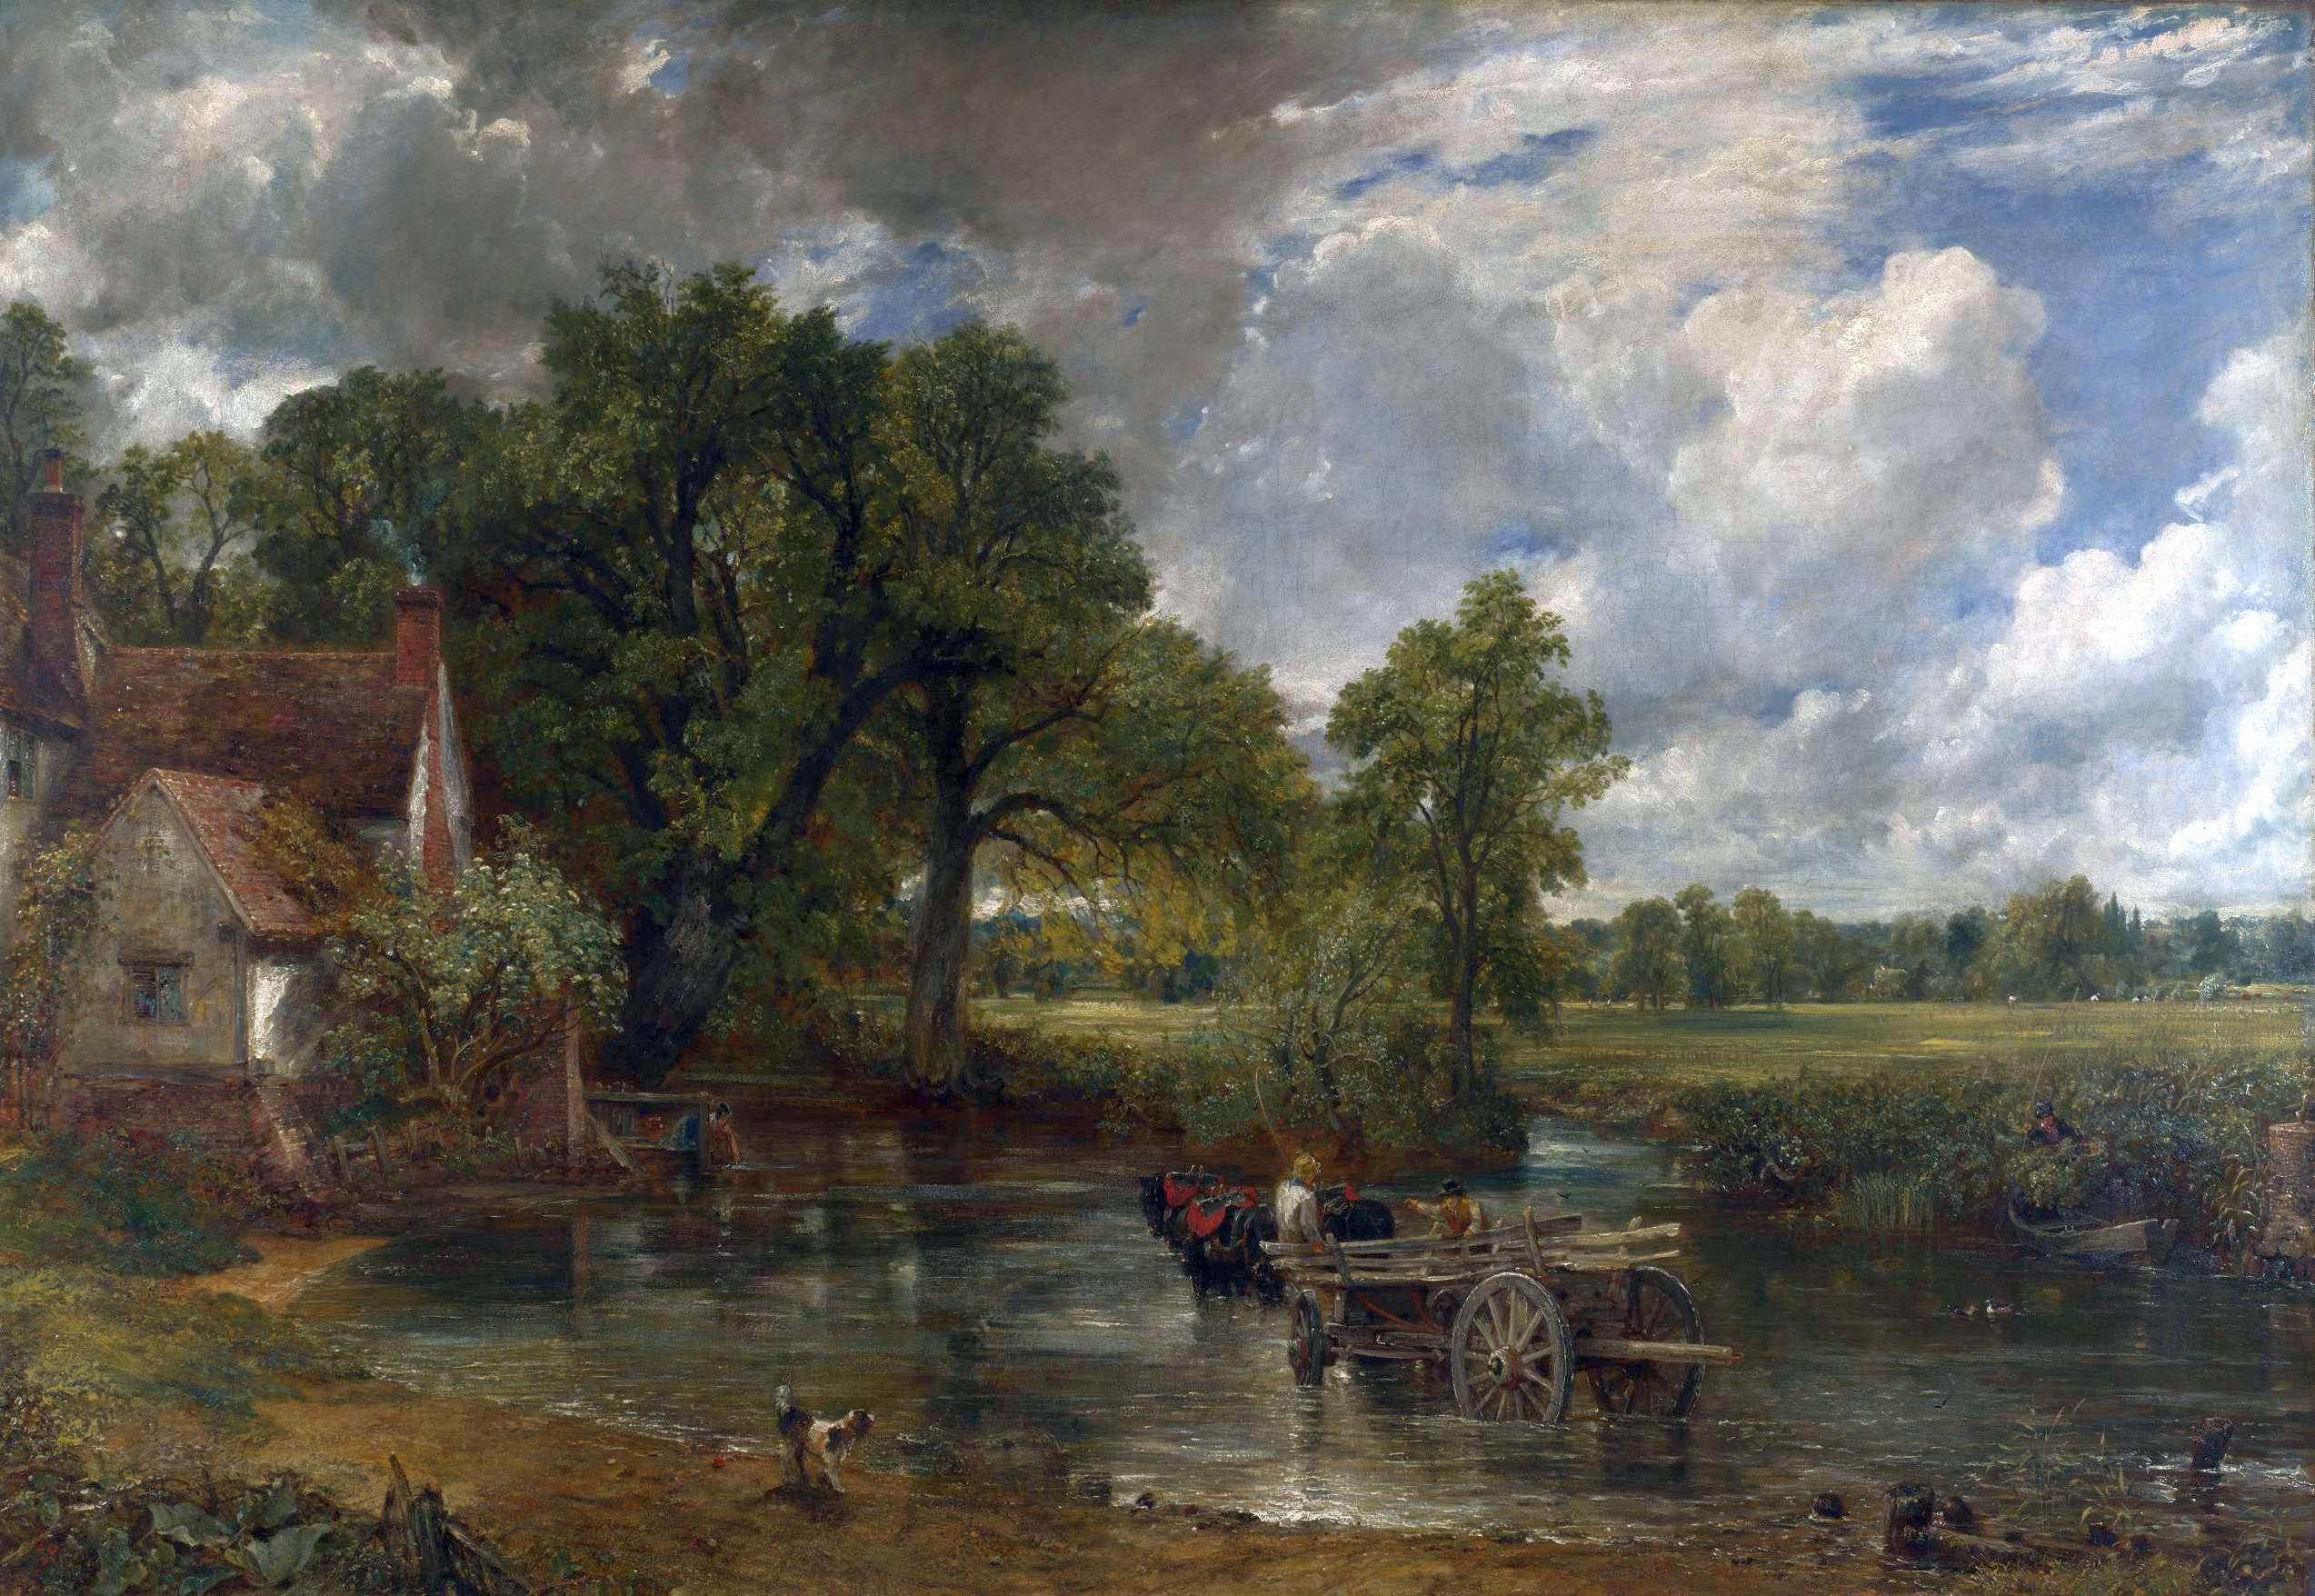 https://upload.wikimedia.org/wikipedia/commons/d/d9/John_Constable_The_Hay_Wain.jpg